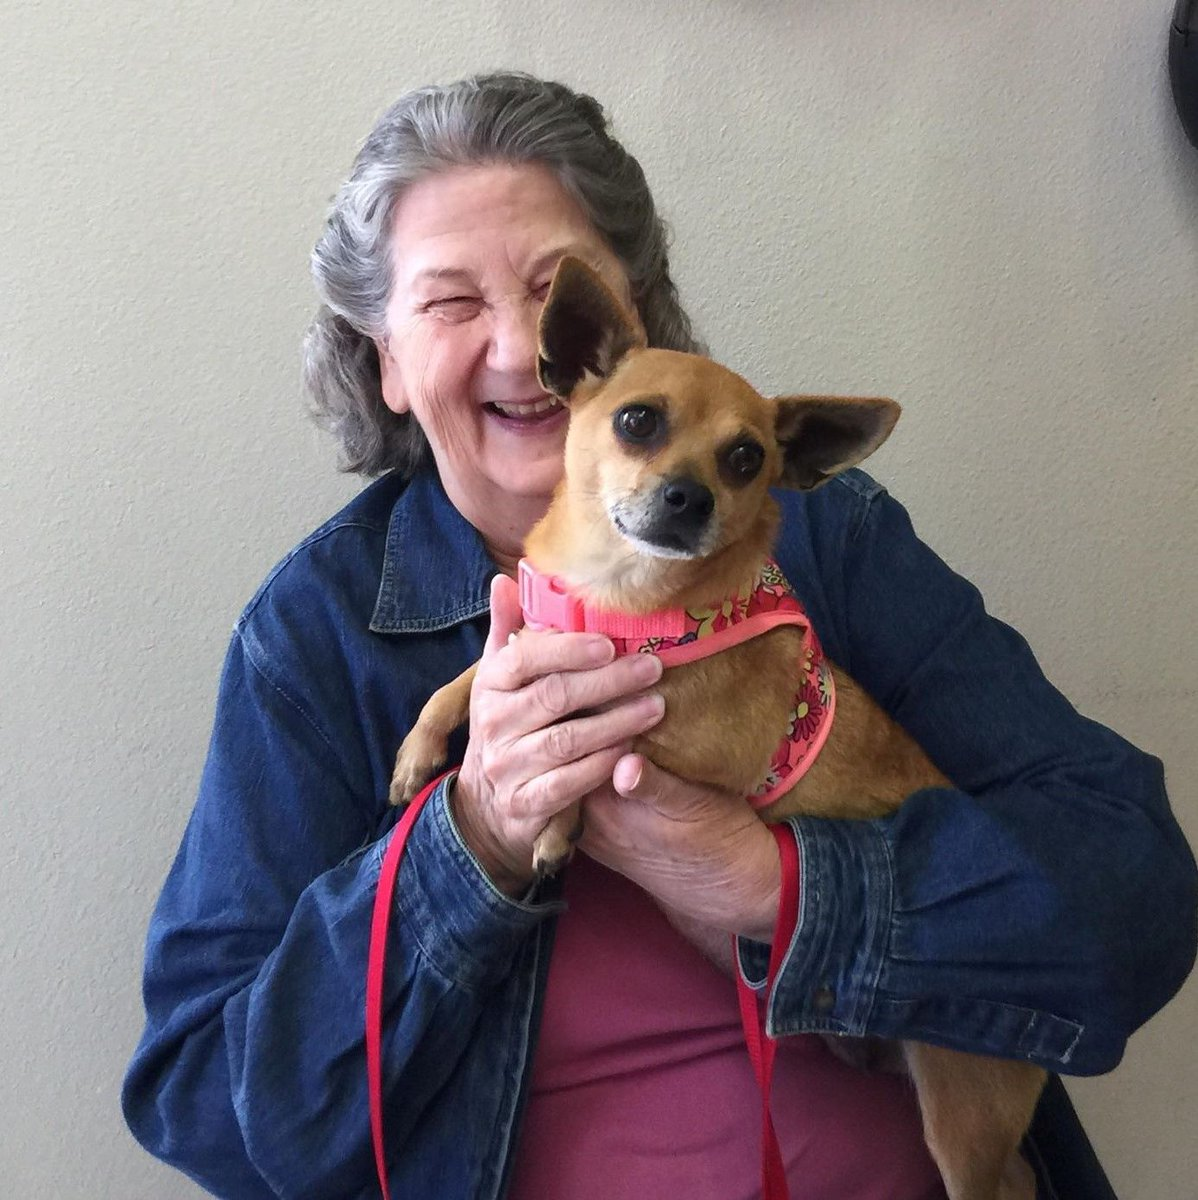 Jenna was returned, but found her perfect match! She went home today with her new mom! Sometimes things work out like they're supposed to. Thank you for adopting from Richland Hills Animal Shelter #adoptdontshop #secondchances #shelterdog #chihuahuaspic.twitter.com/vkItWEByV7